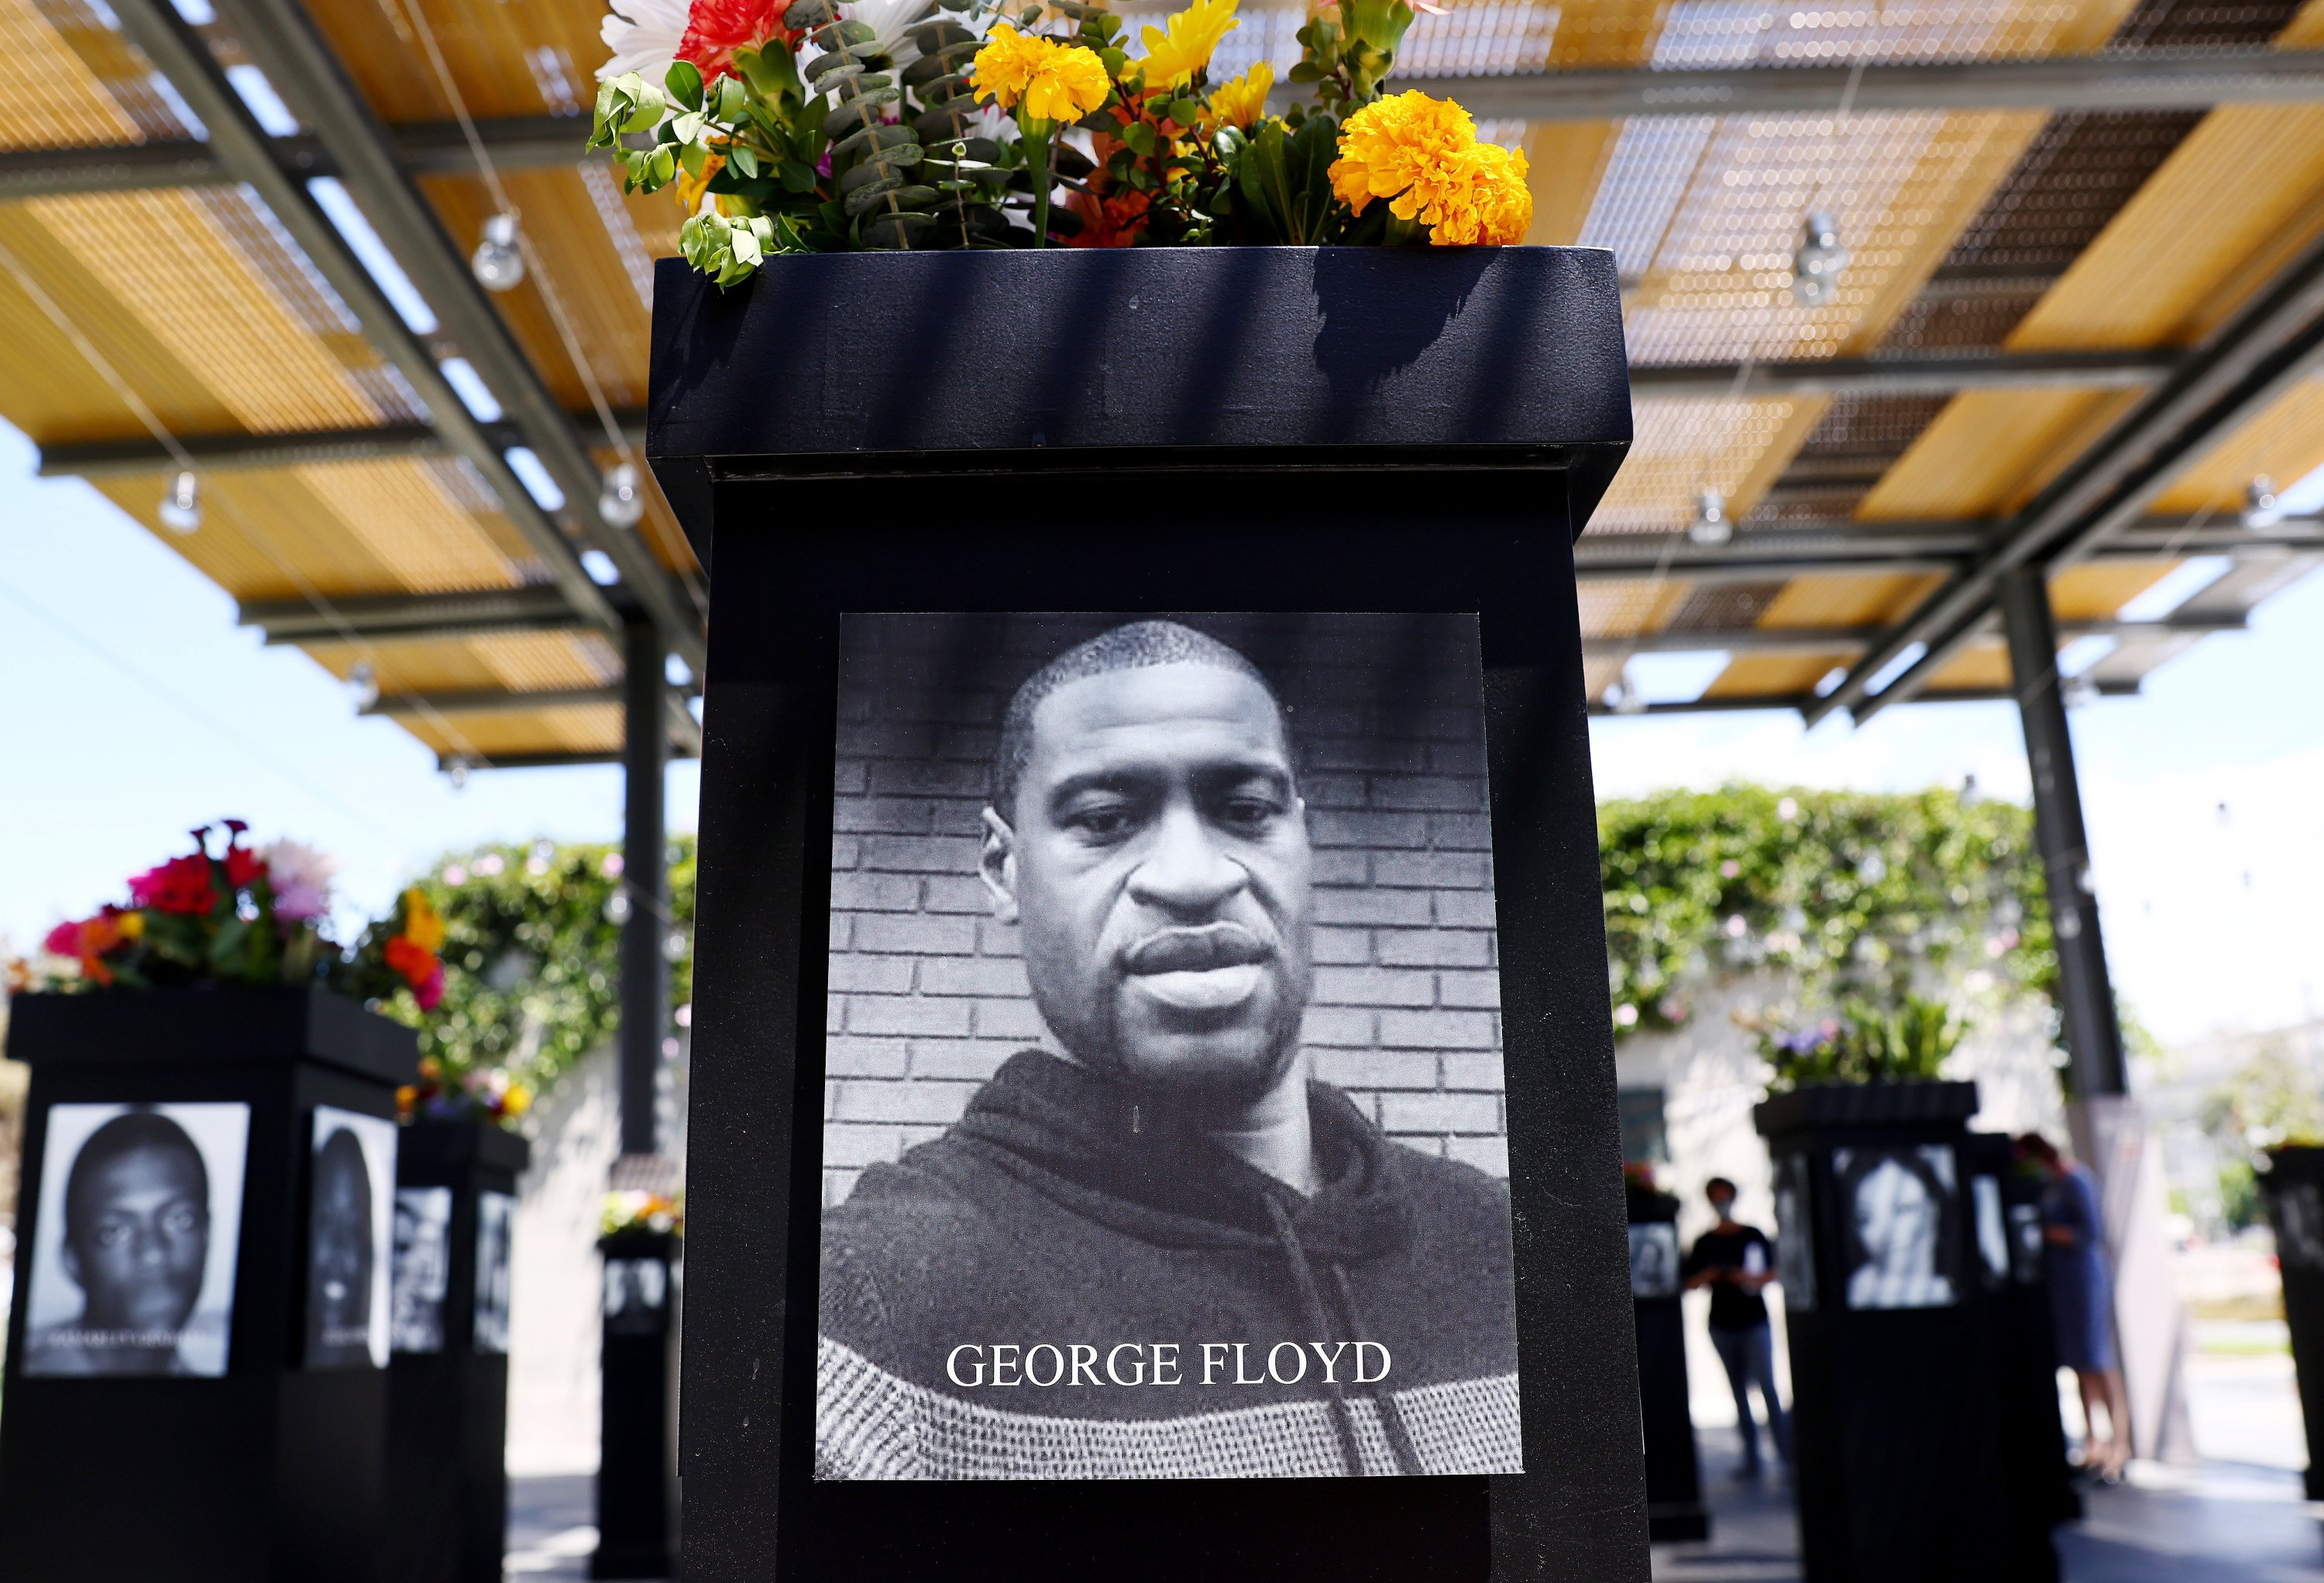 A photograph of George Floyd (C) is displayed along with other photographs at the Say Their Names memorial exhibit at Martin Luther King Jr. Promenade, in San Diego, CA, U.S., July 20, 2021. (Photo by Getty Images)